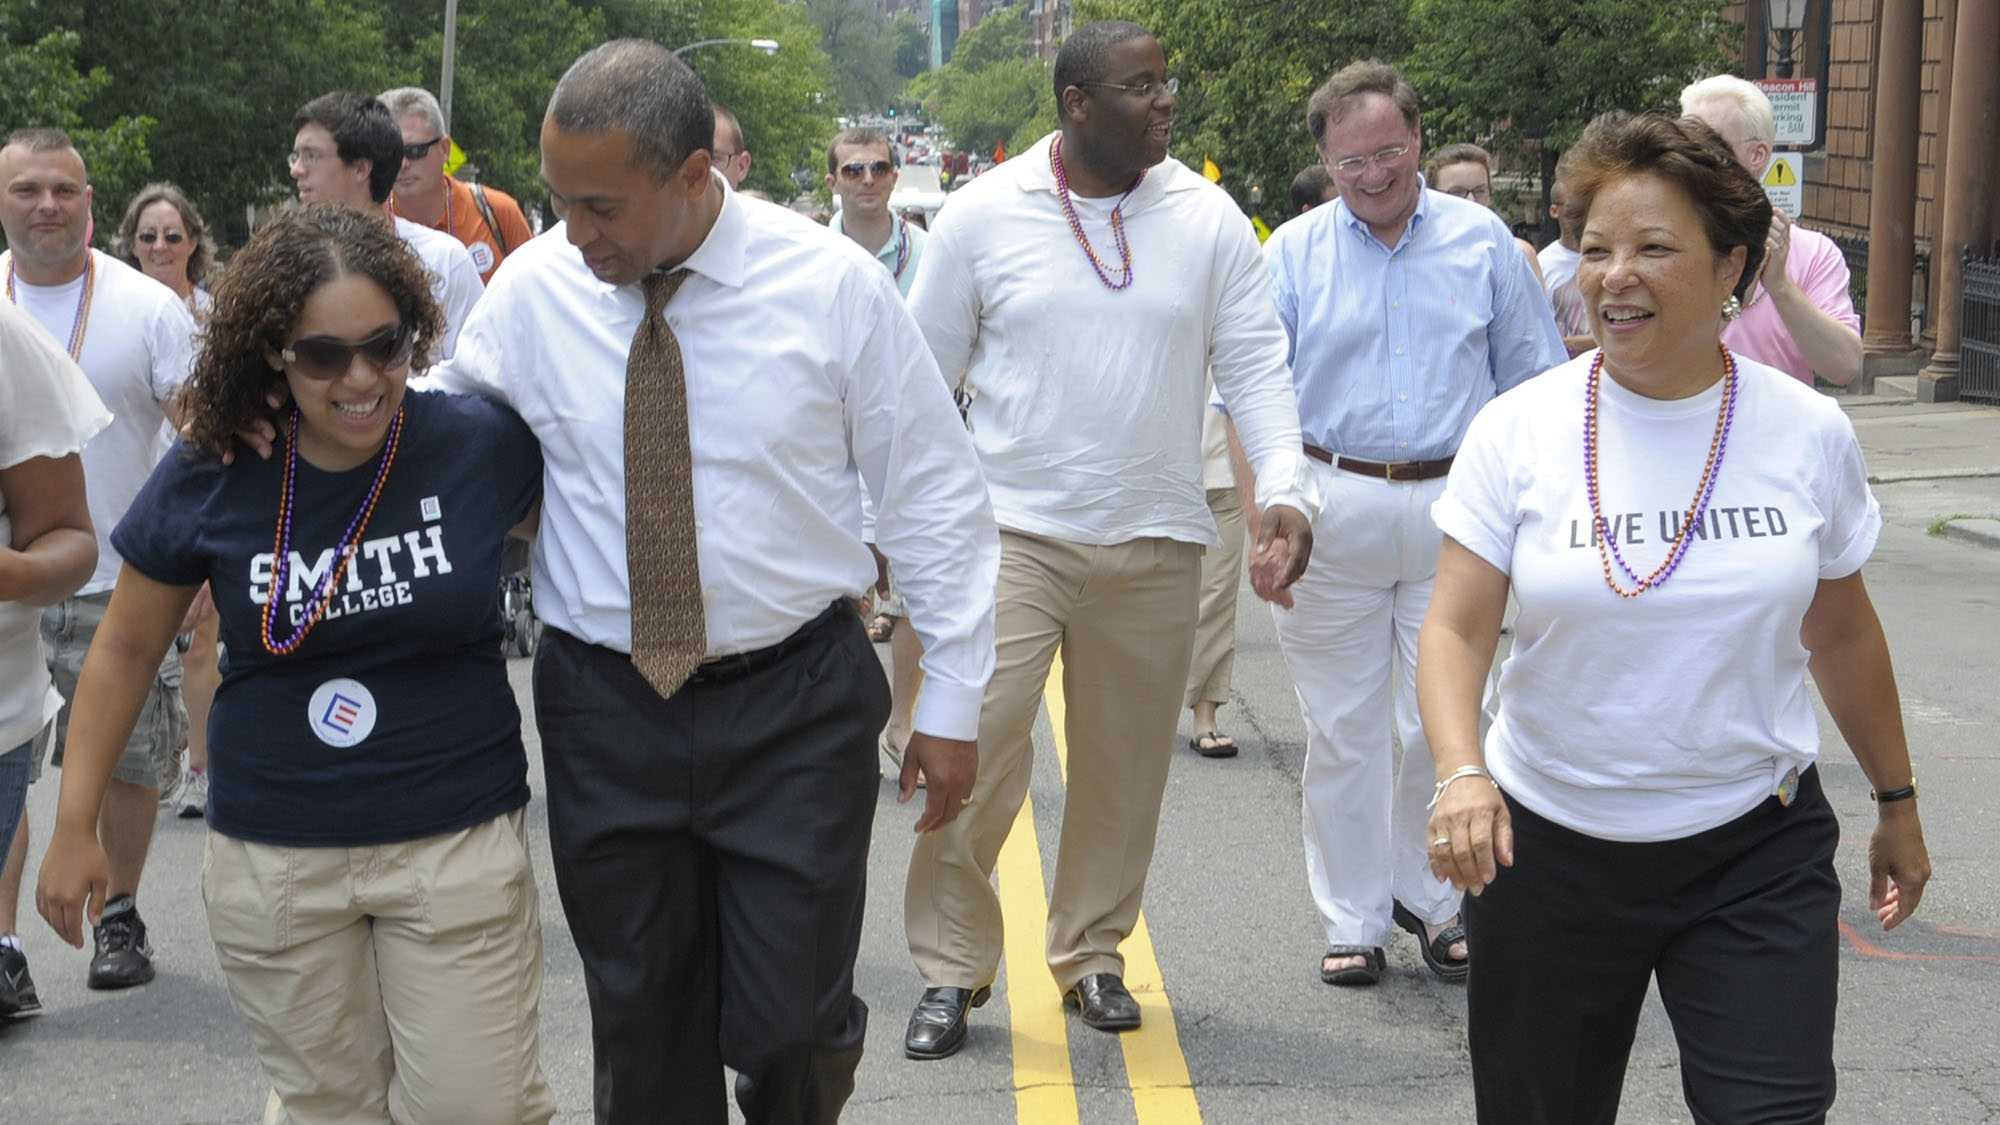 Gov. Deval Patrick, second from left, puts his arm around his daughter Katherine Patrick, left, as he walks with his family in the gay pride parade, Saturday, June 14, 2008 in Boston. Patrick's wife Diane Patrick is walking at right.